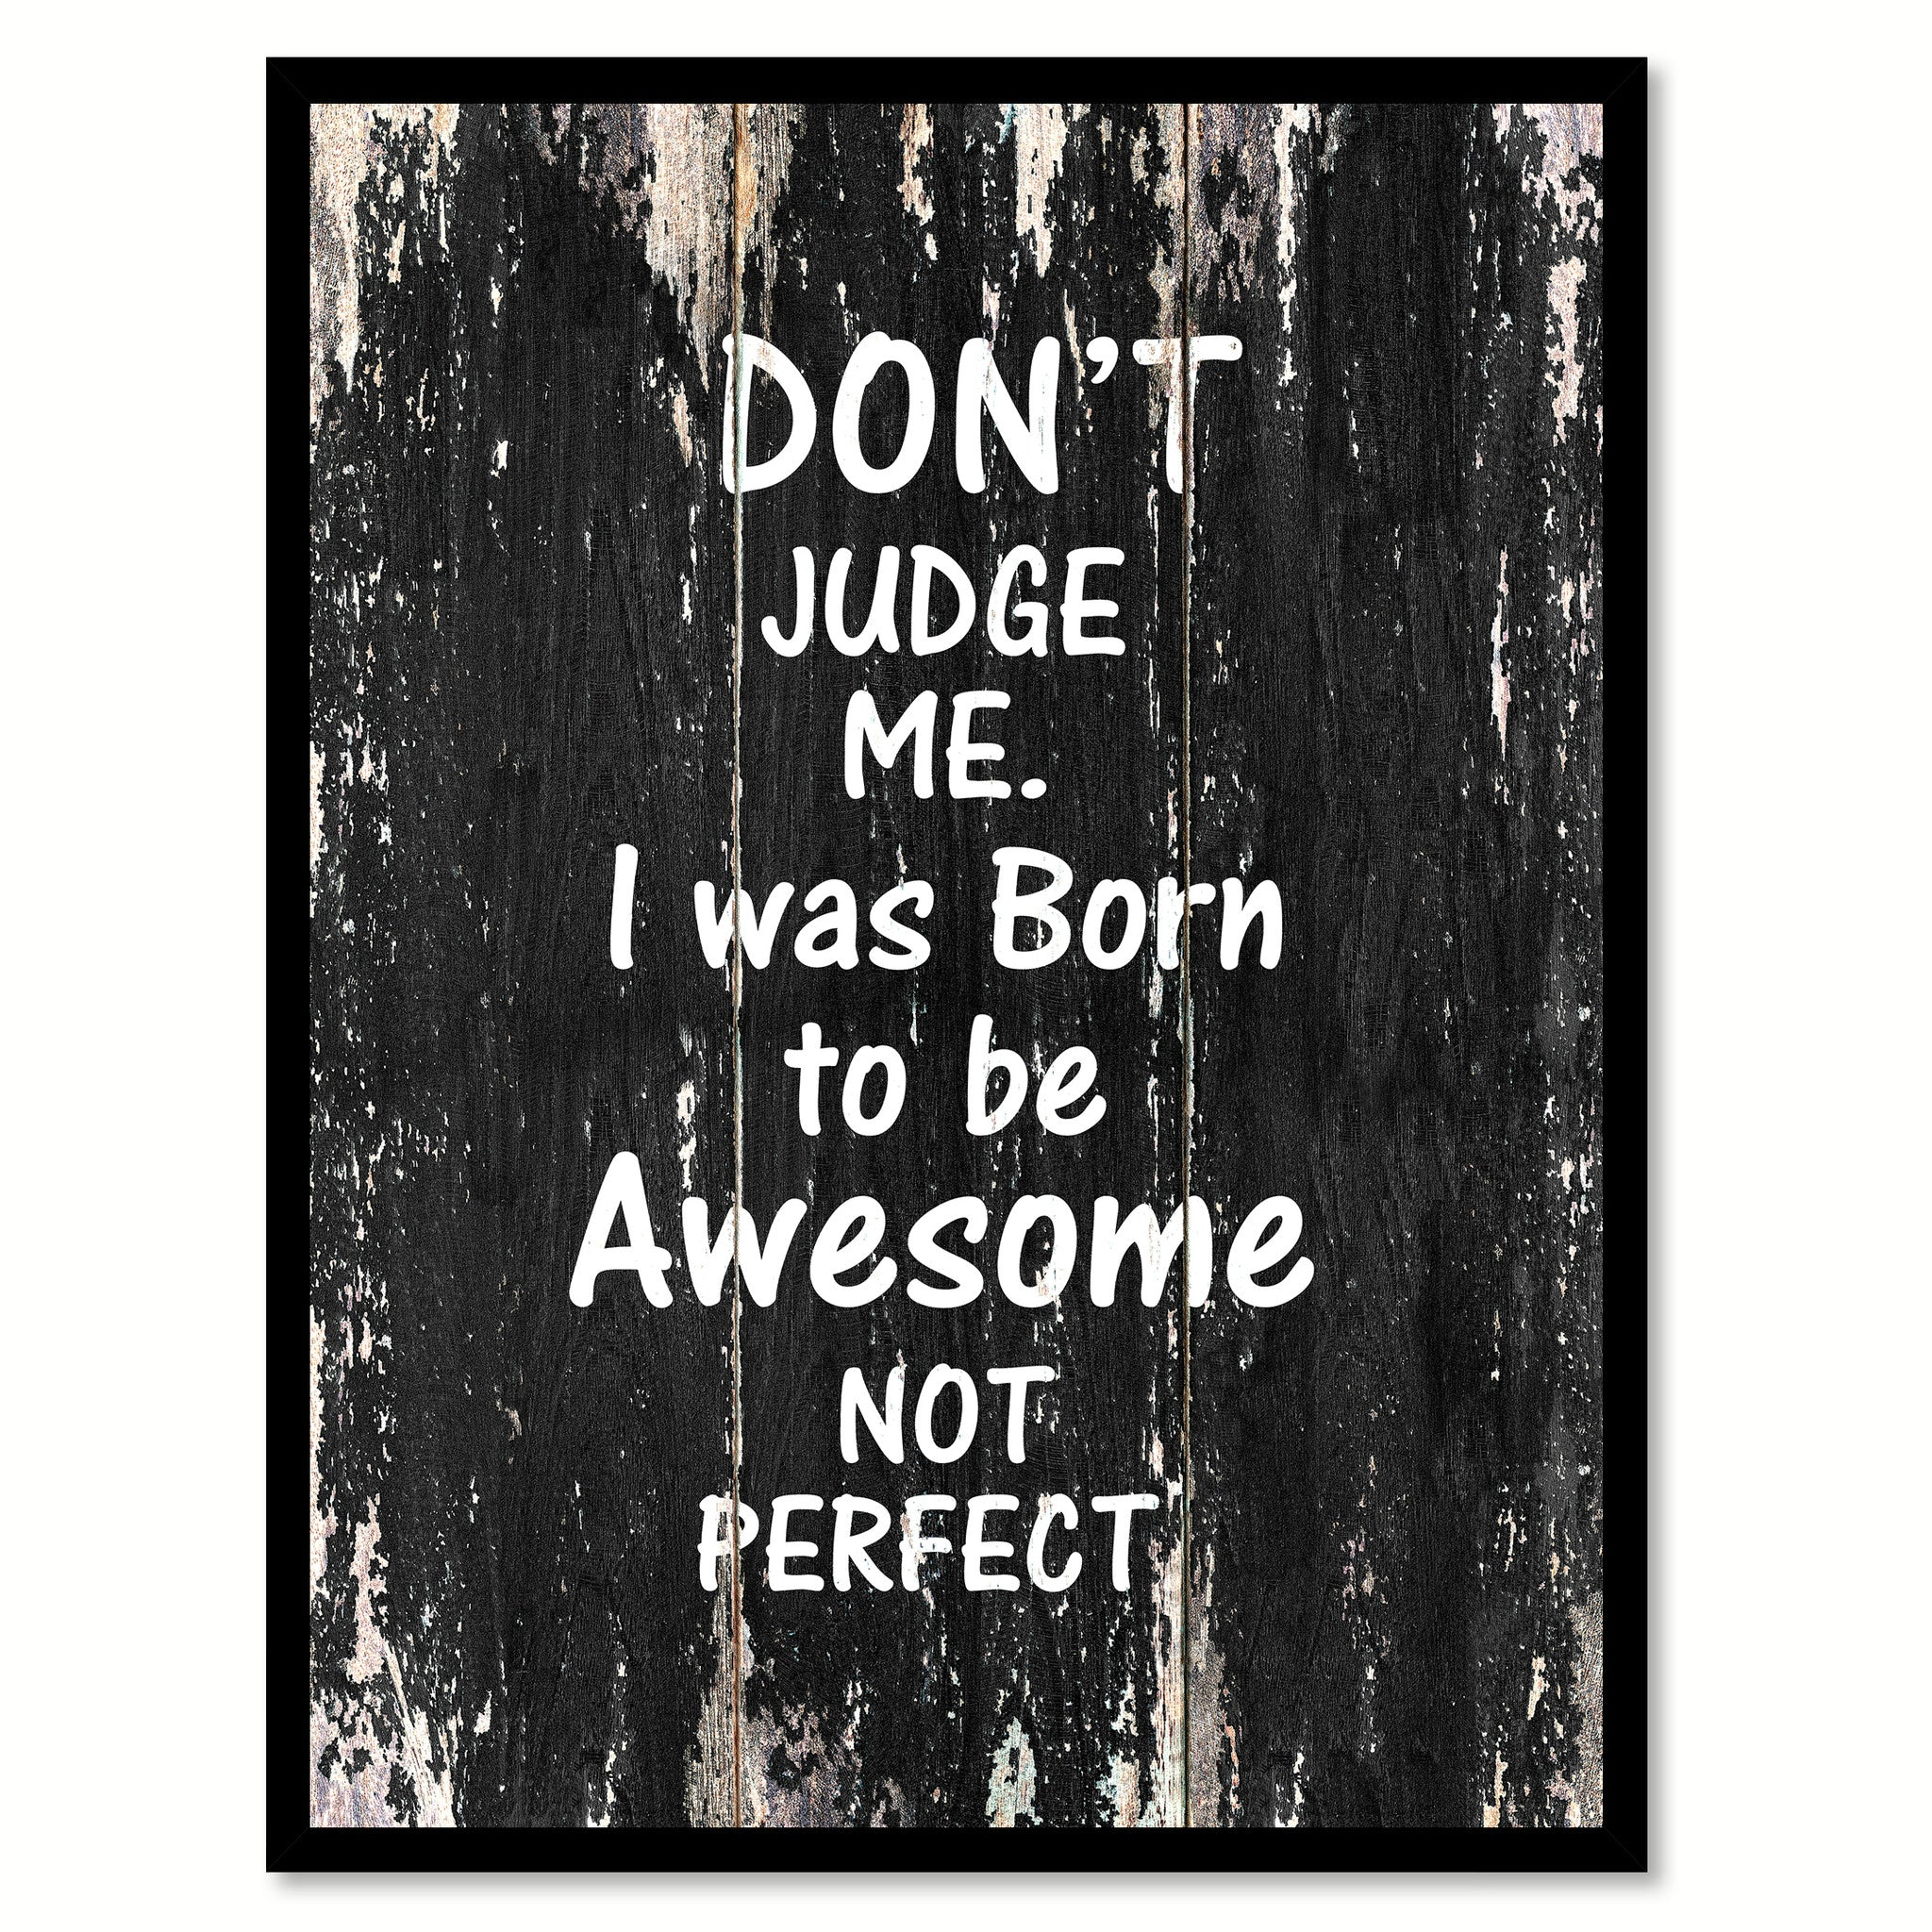 Don't judge me I was born to be awesome not perfect Motivational Quote Saying Canvas Print with Picture Frame Home Decor Wall Art